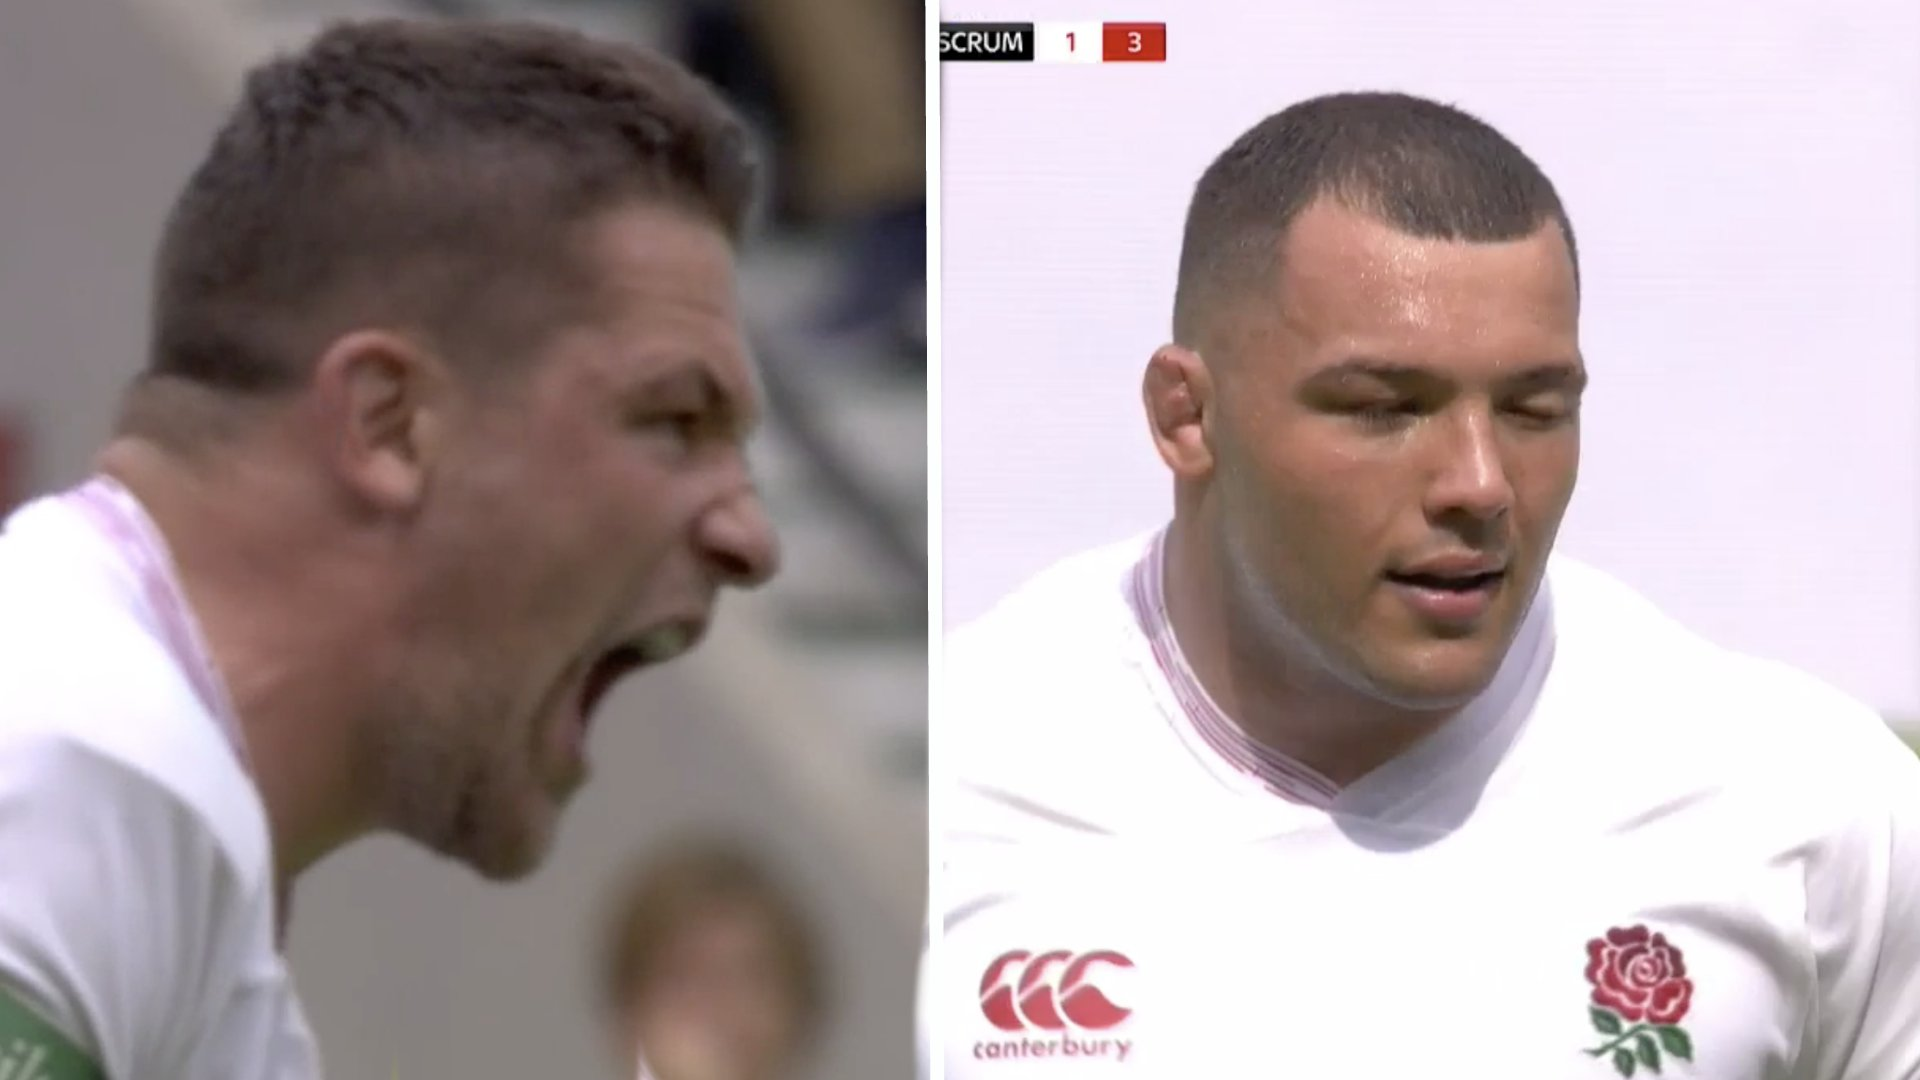 English scrum destroys the Welsh with terrifying ease